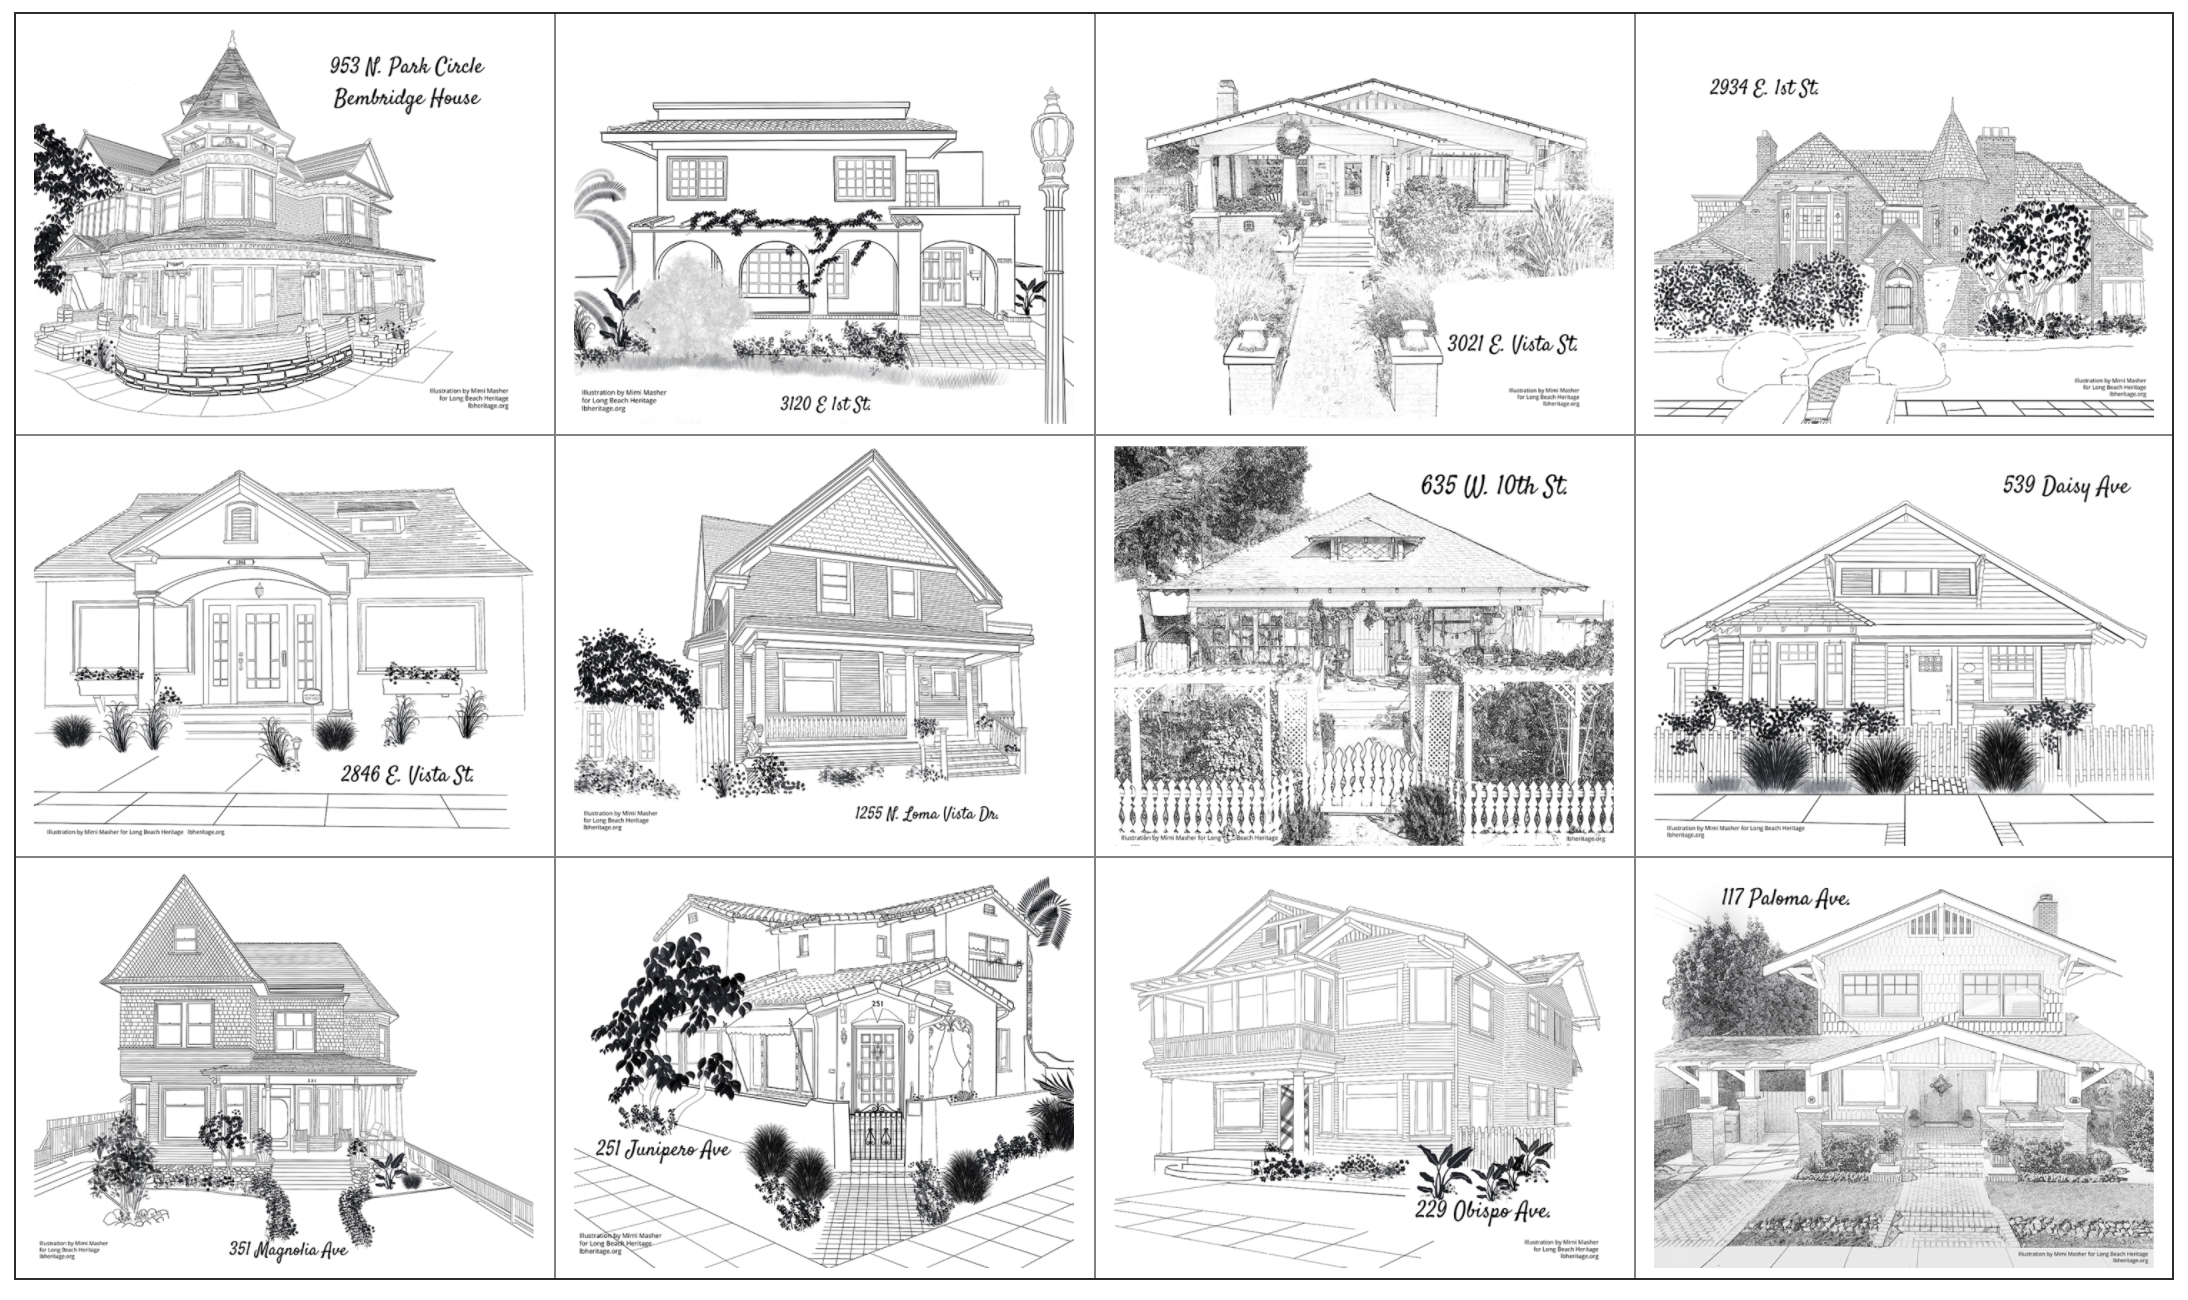 Coloring pages for Long Beach Heritage holiday coloring contest